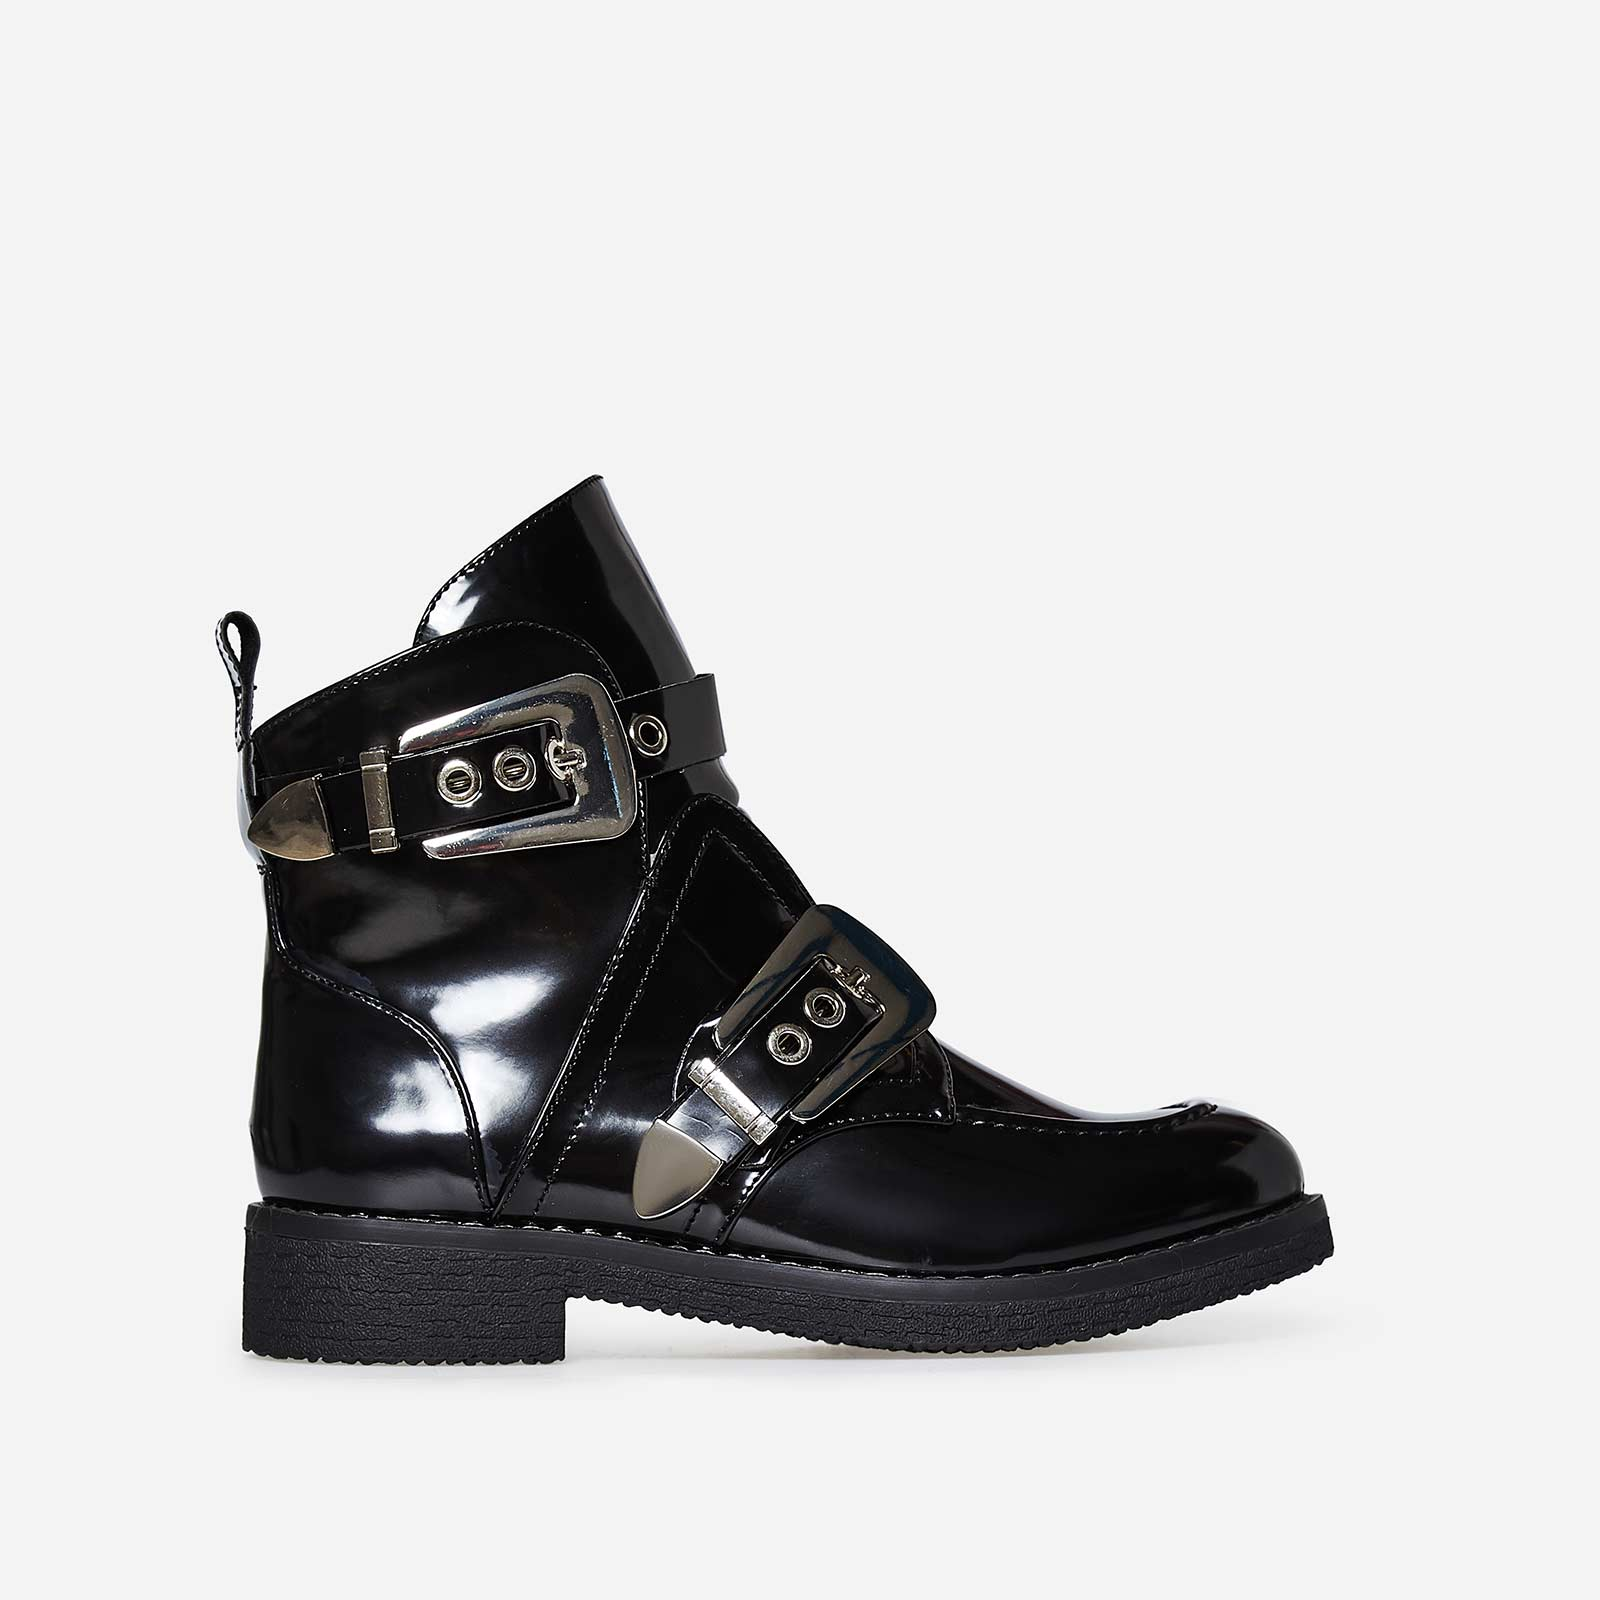 Veyron Buckle Detail Biker Boot In Black Patent